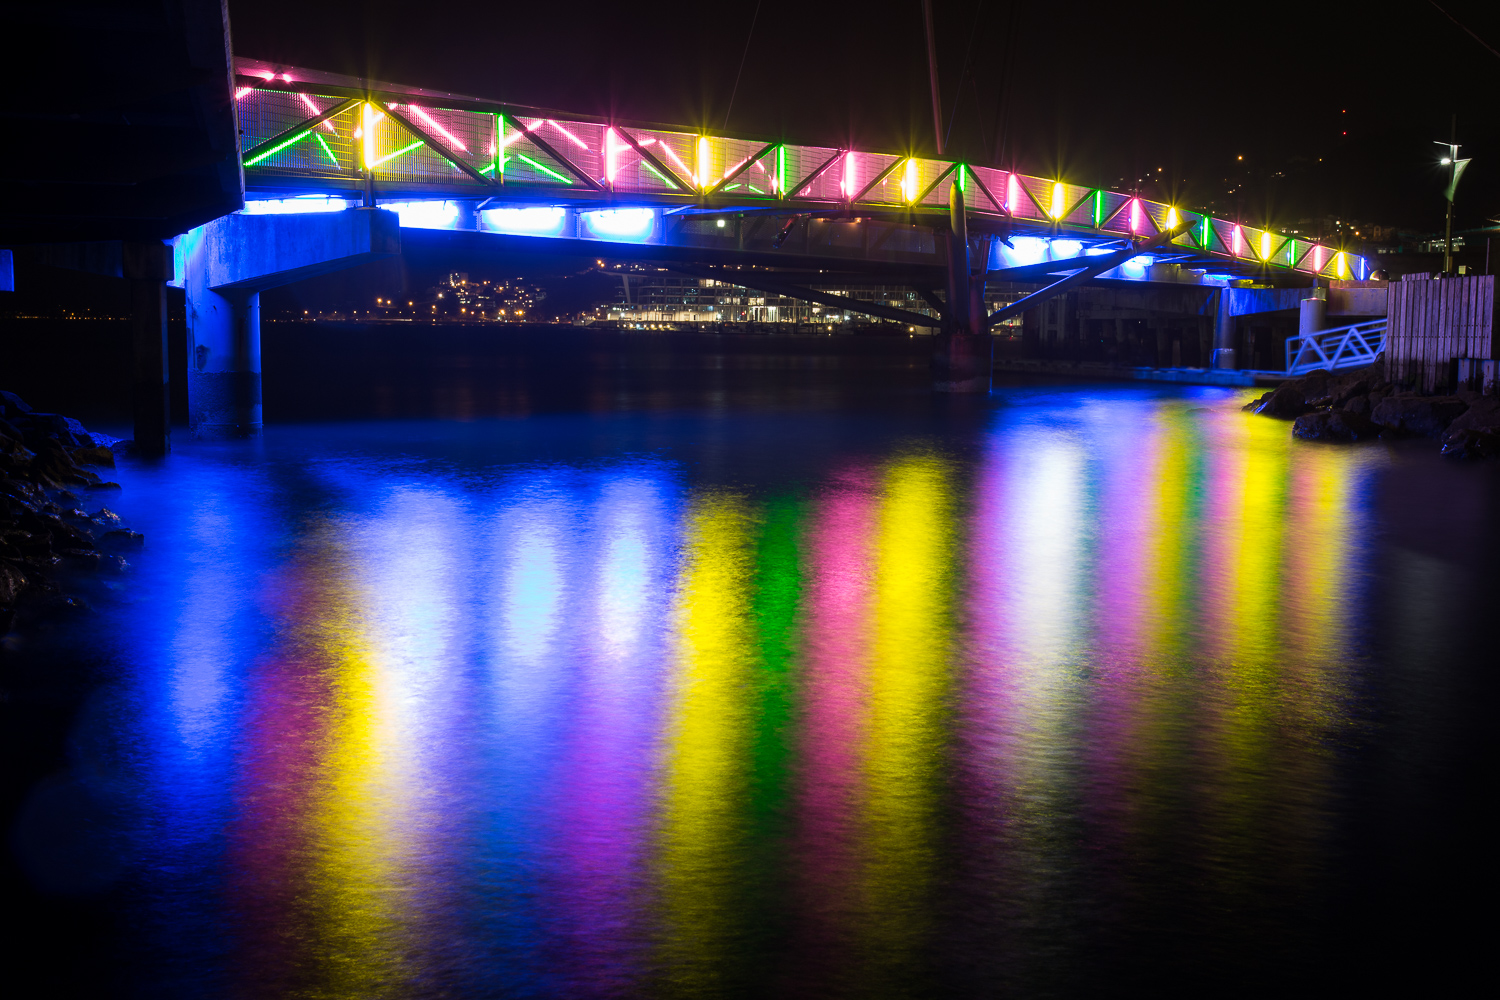 Bridge of Light reflections